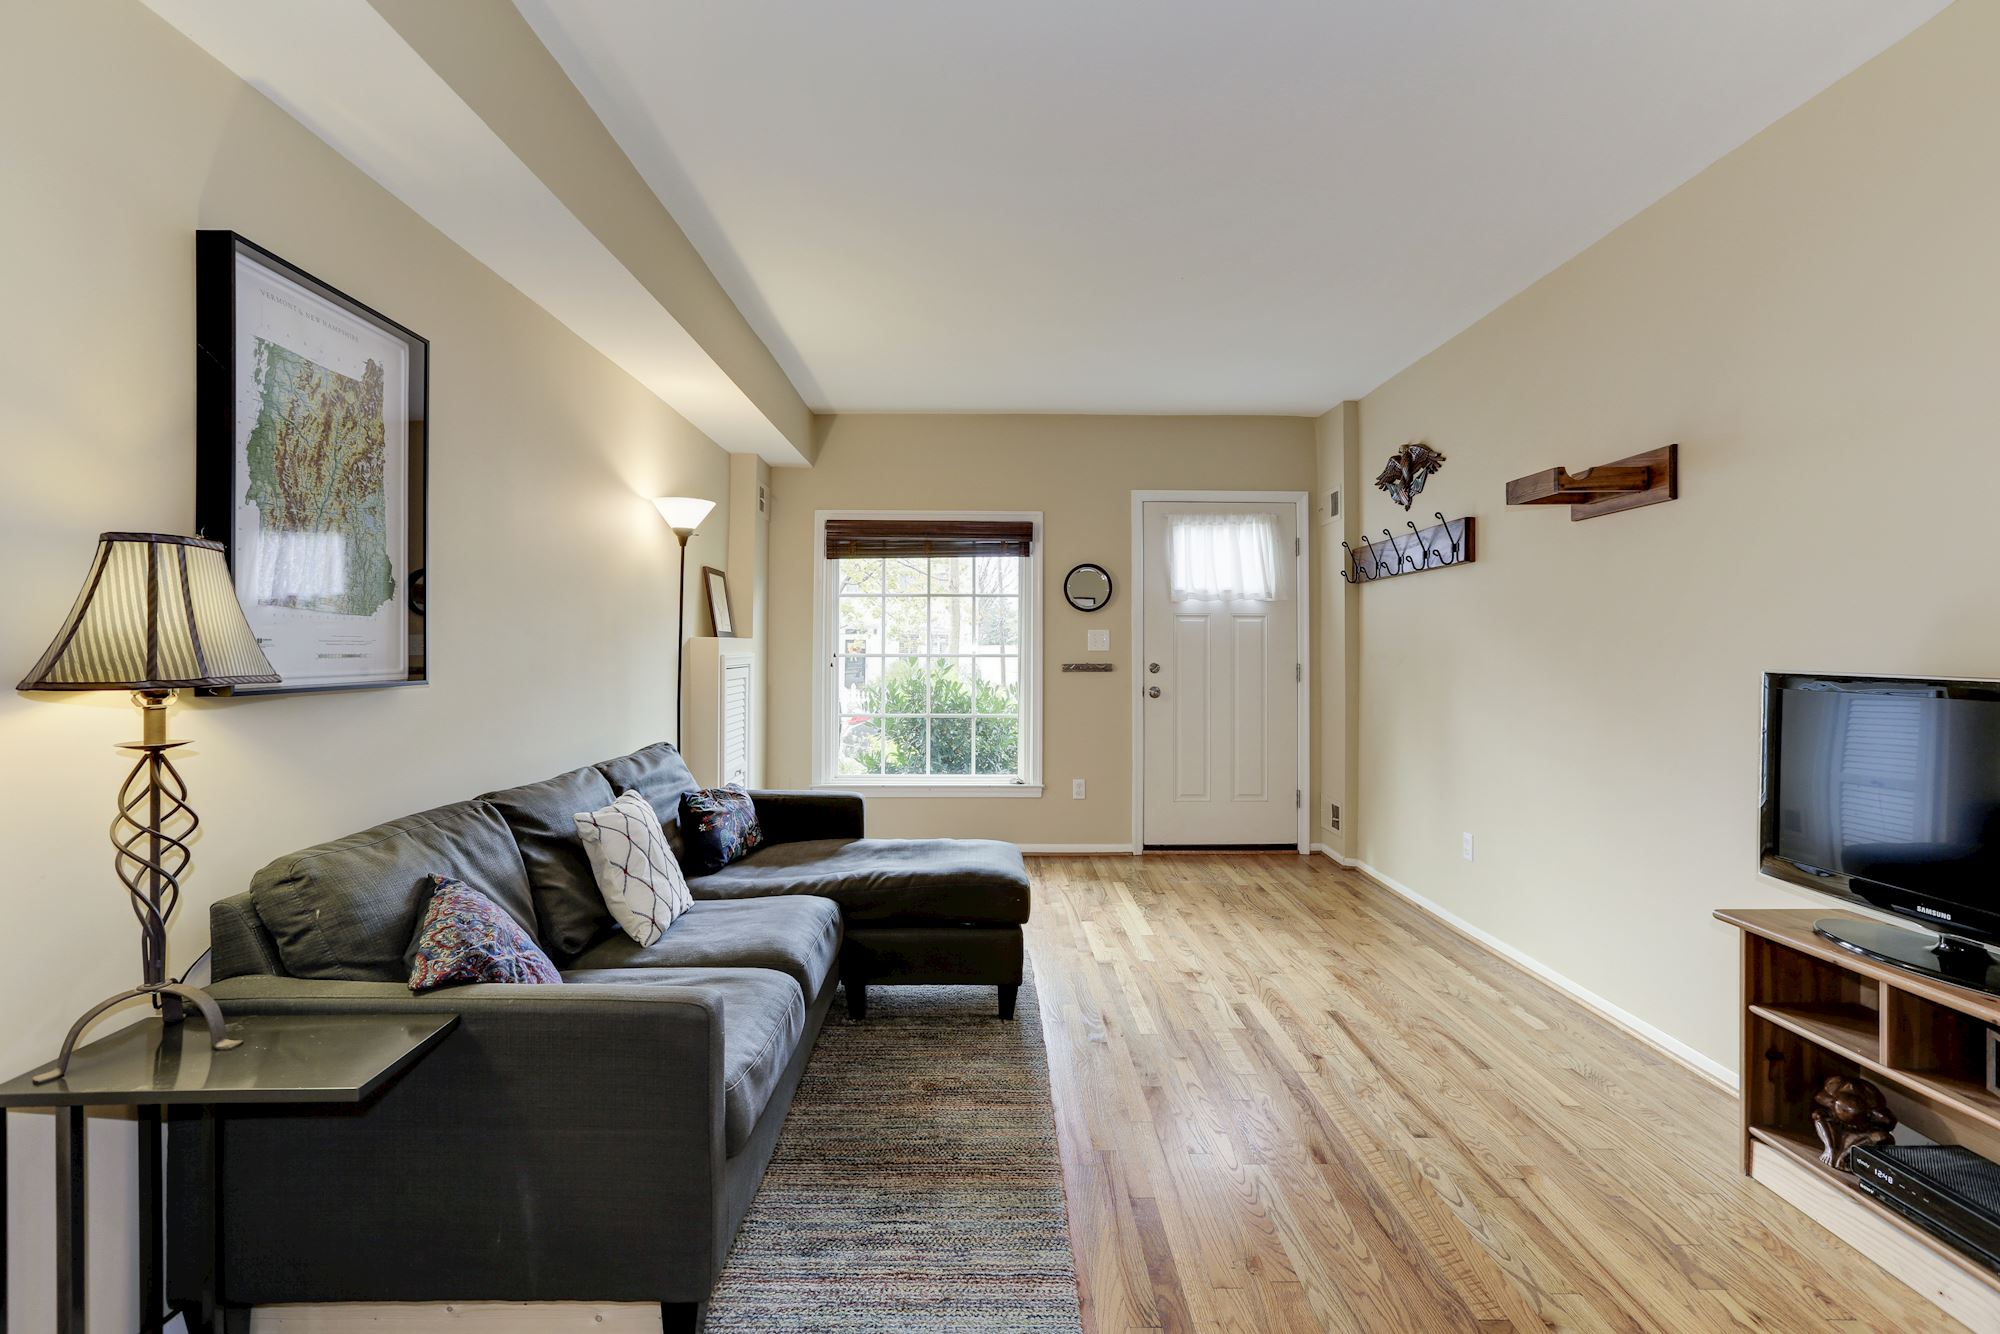 NEW LISTING: 2 BD Townhome in Excellent Washington, DC location!